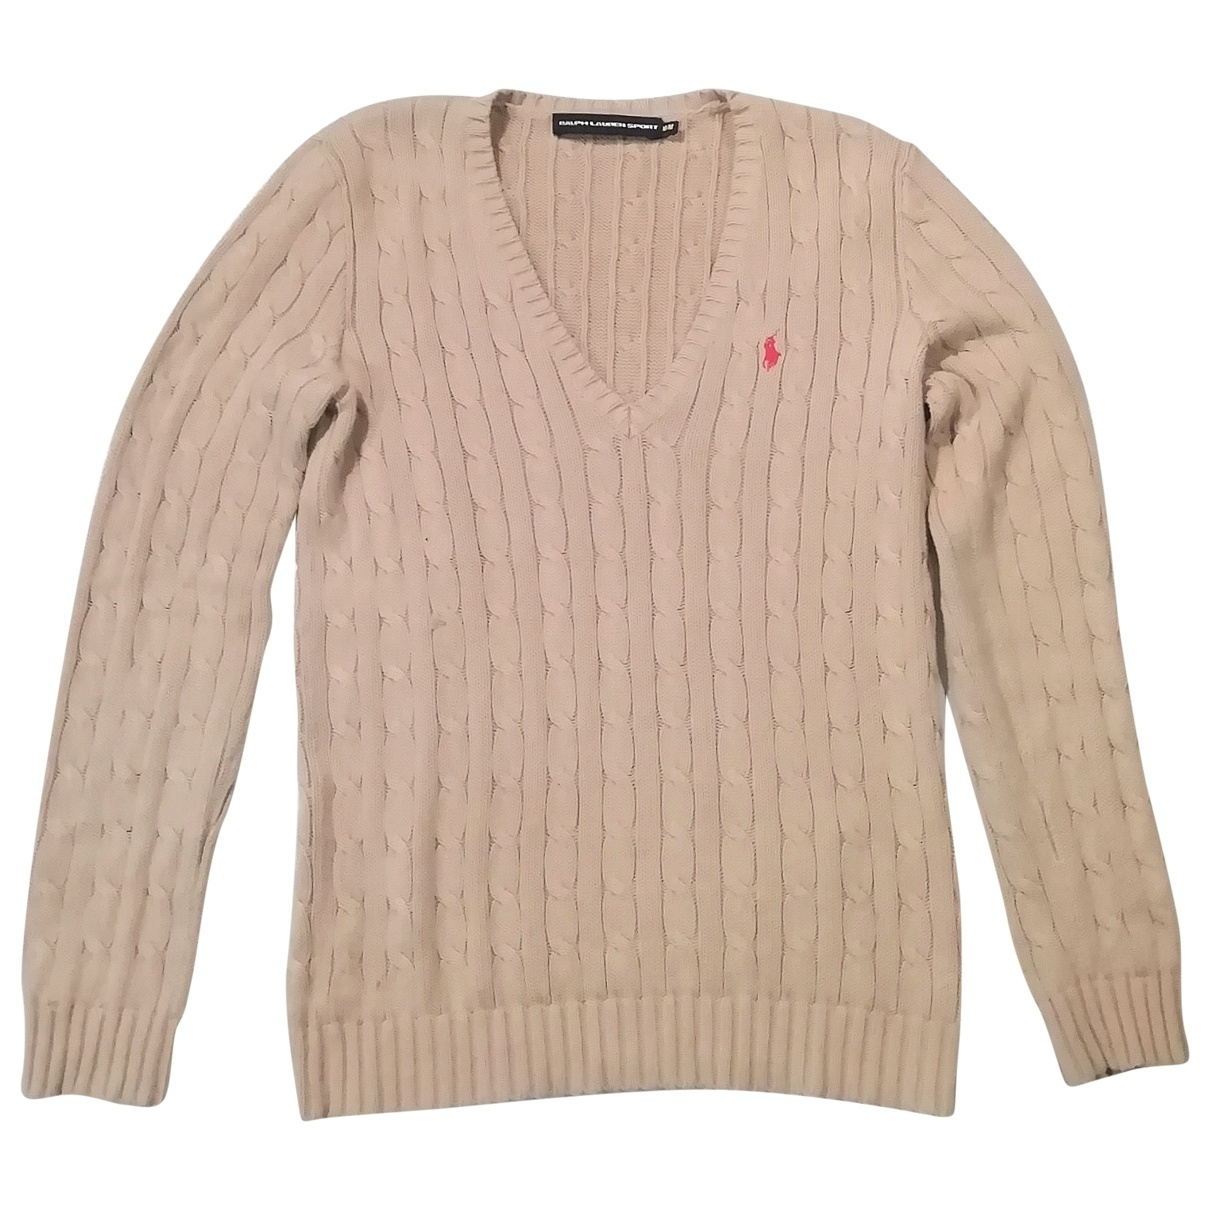 Ralph Lauren \N Beige Cotton Knitwear & Sweatshirts for Men M International